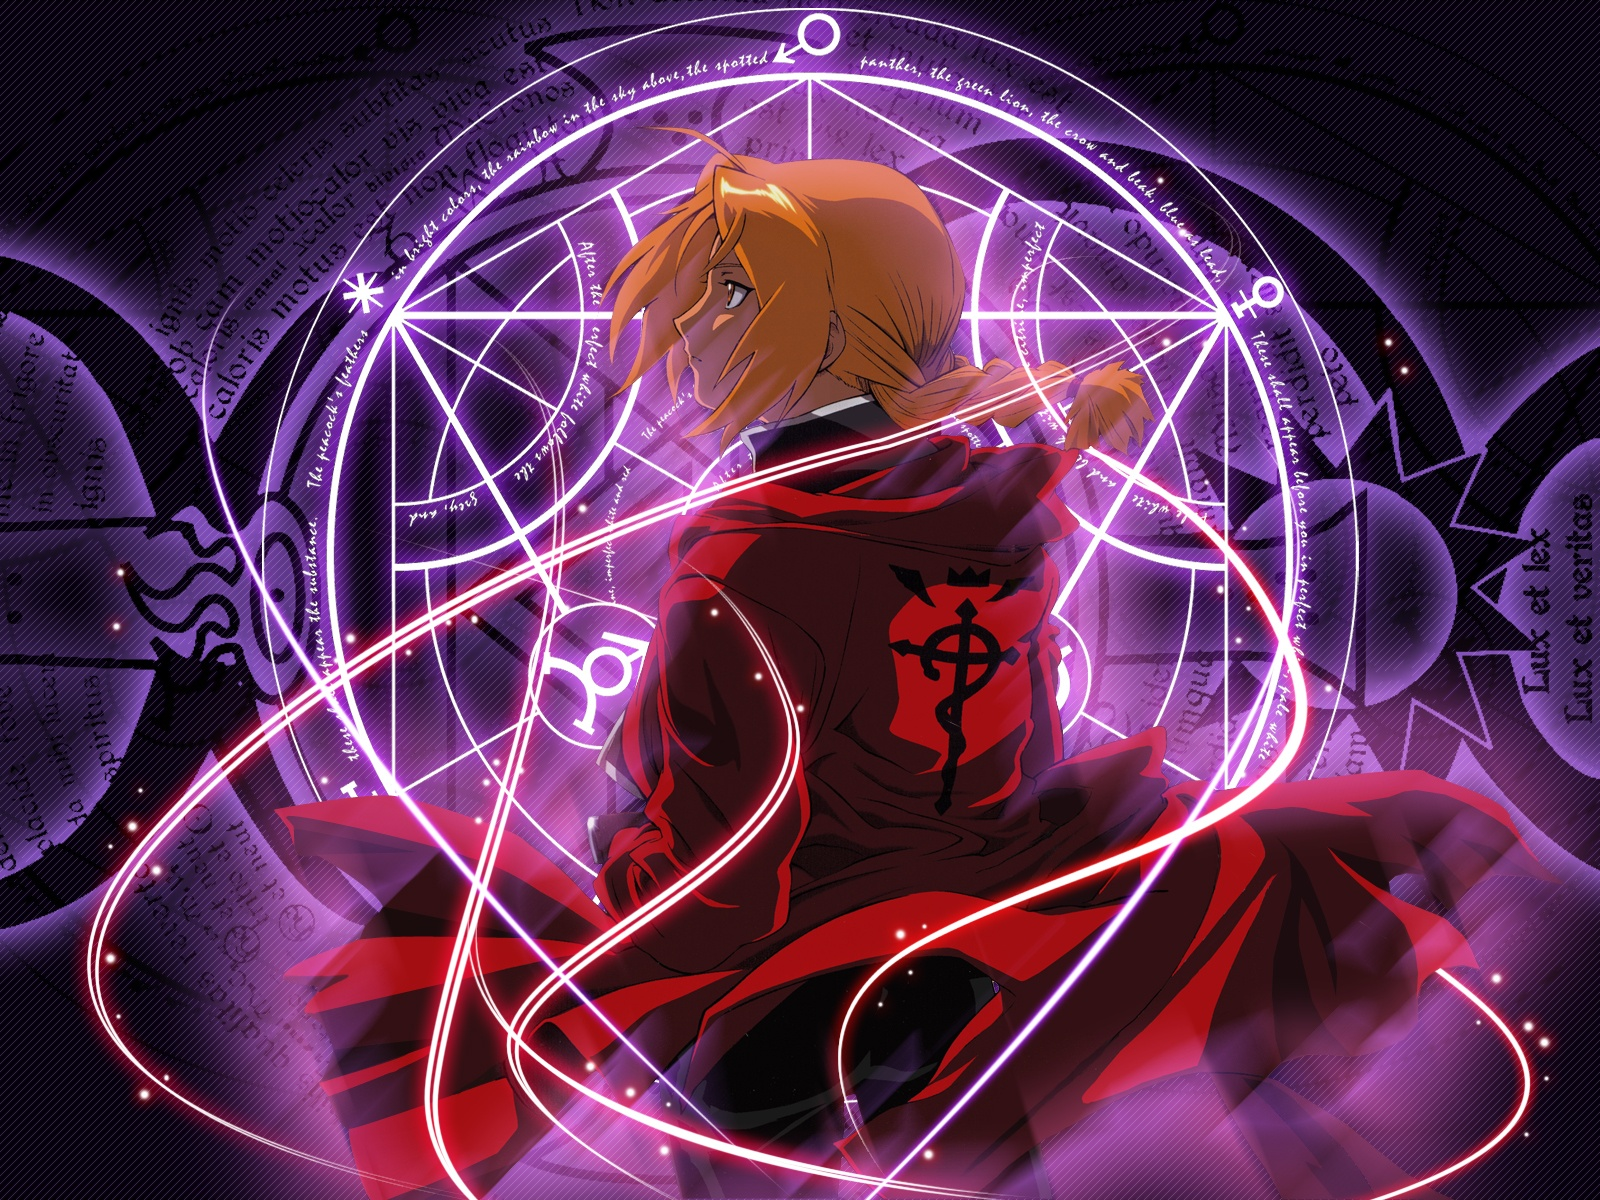 1500x500 Fullmetal Alchemist Brotherhood Iphone,  high